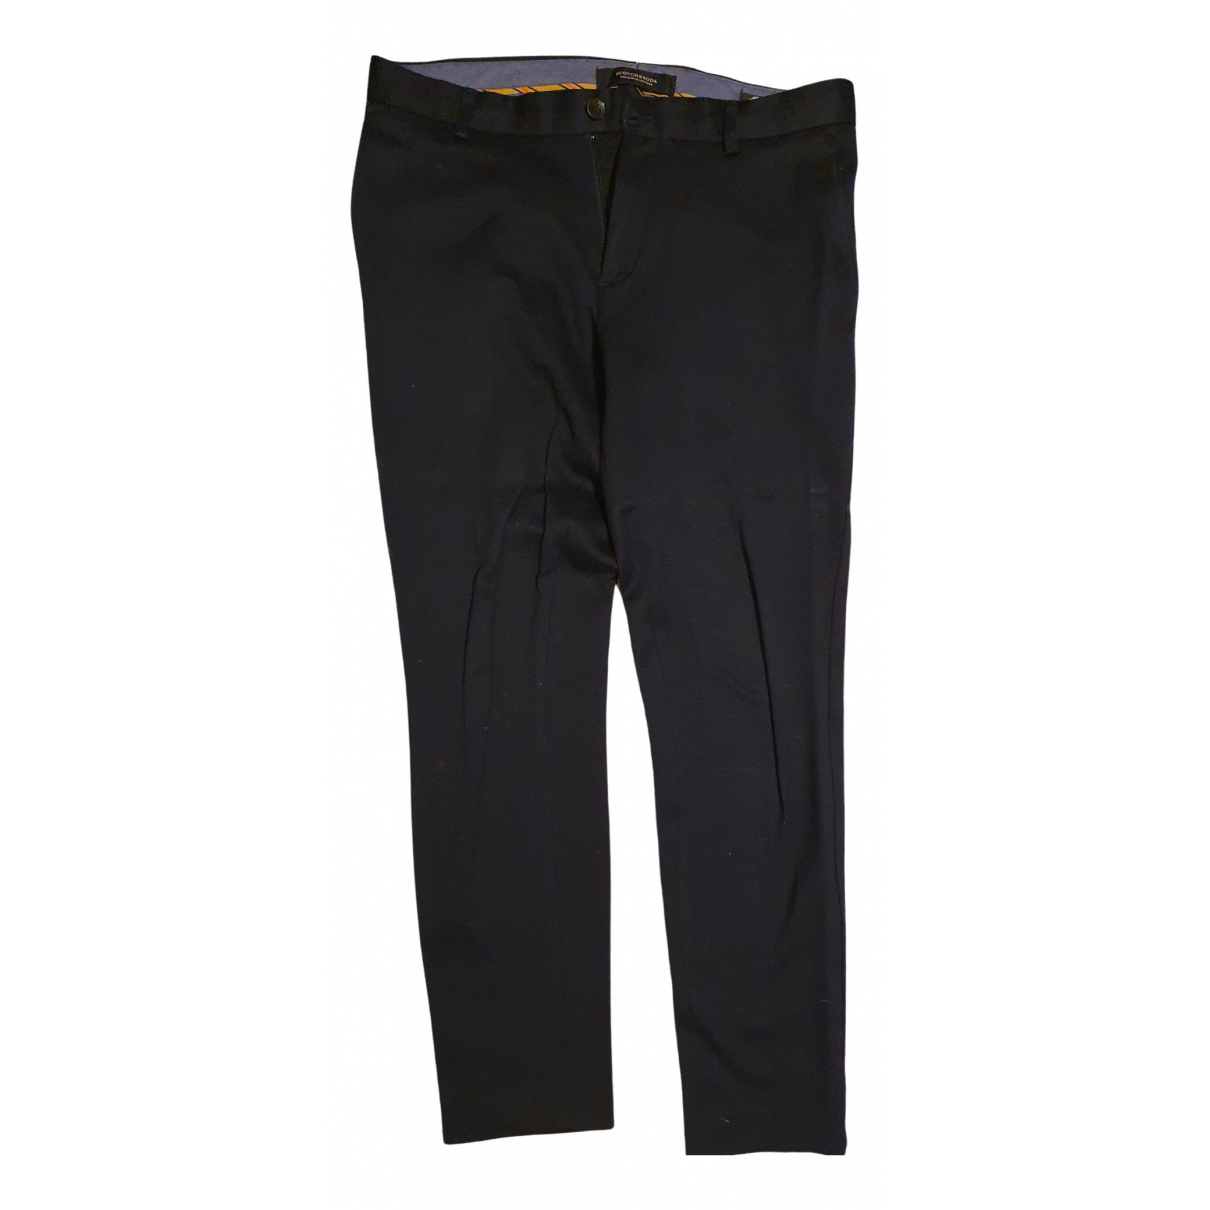 Scotch & Soda \N Black Cotton Trousers for Men 30 UK - US